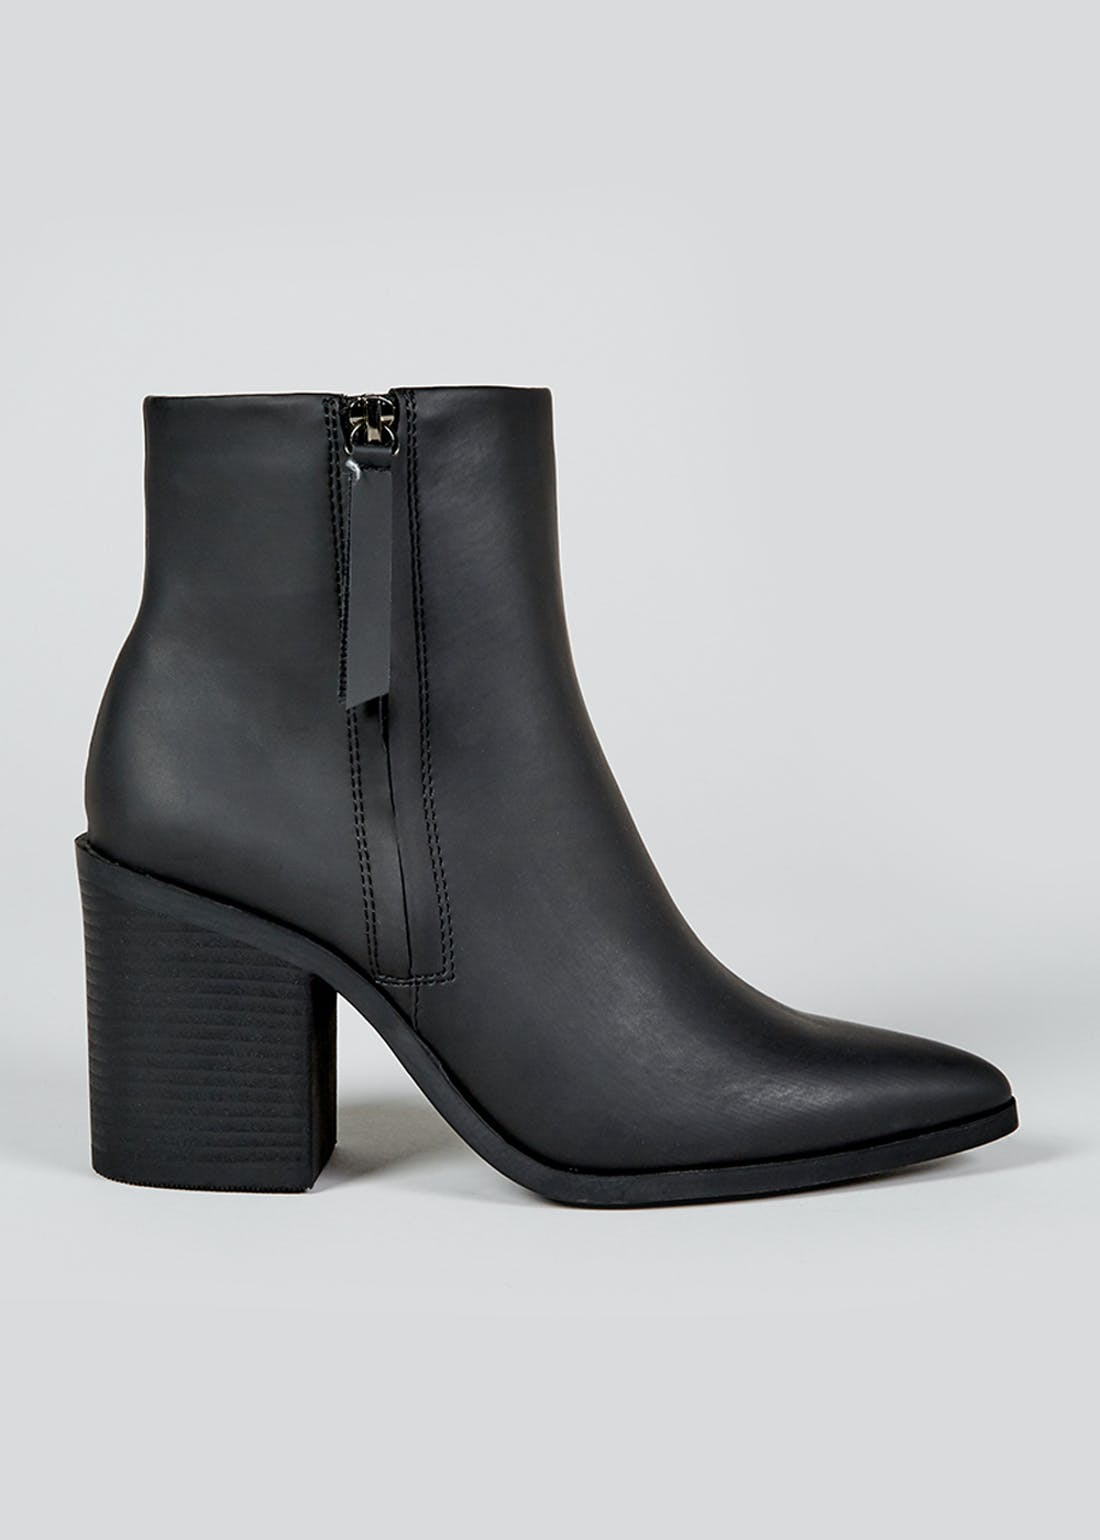 Black Block Heel Boots